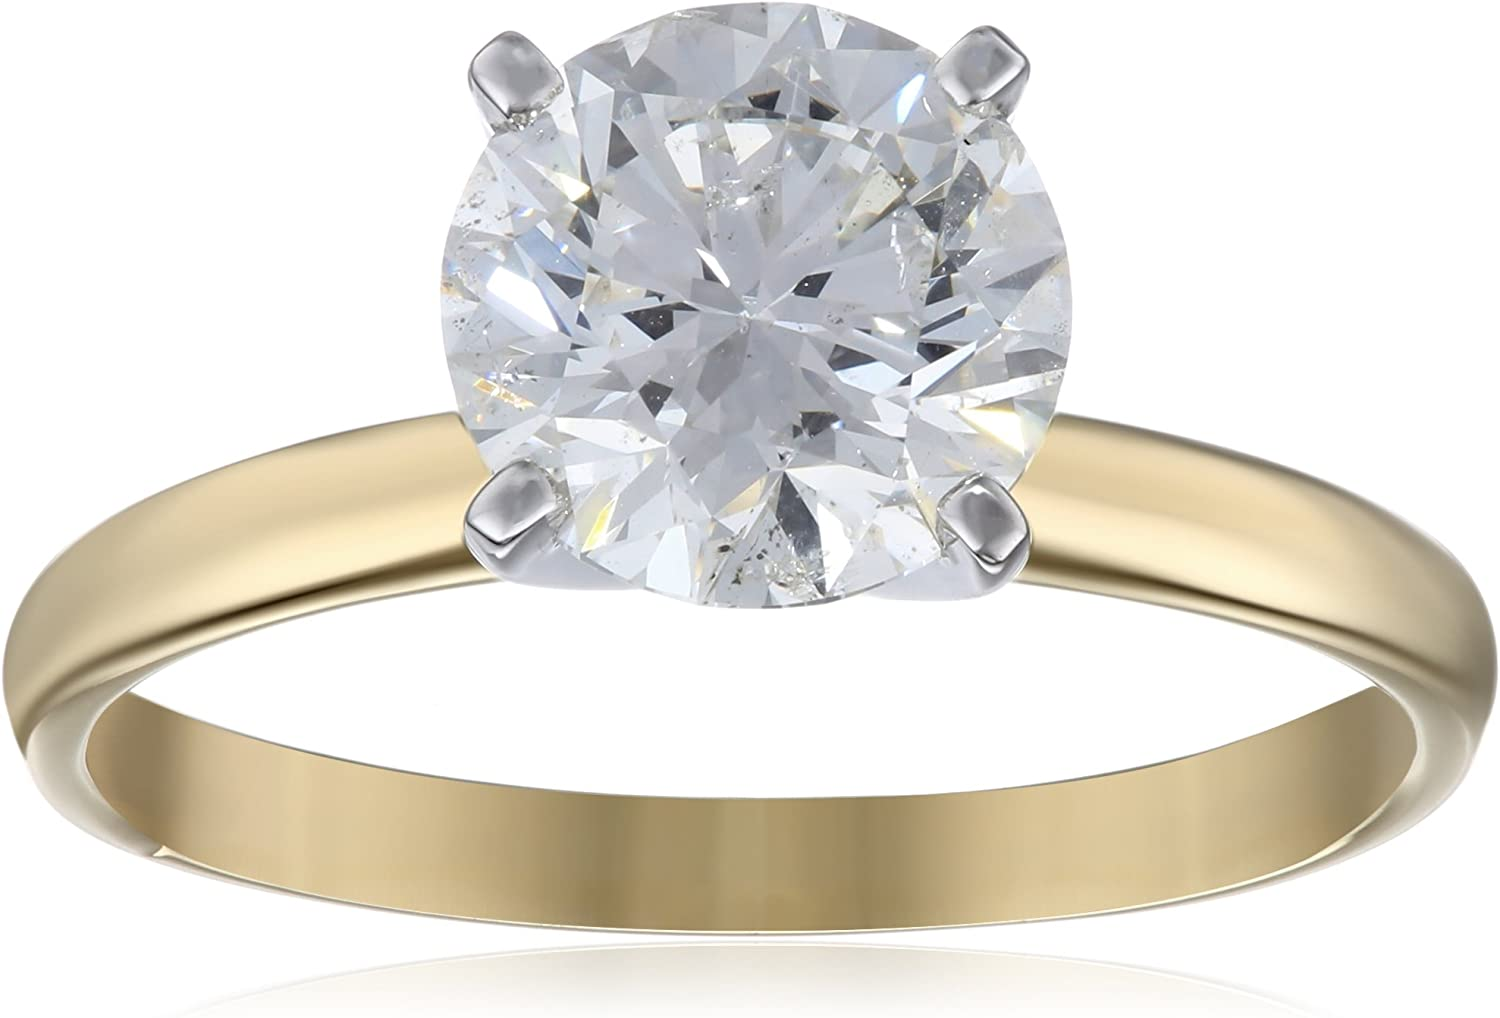 IGI Certified 18k Gold Classic Round-Cut Diamond Engagement Ring (2.0 carat, H-I Color, SI1-SI2 Clarity) Engagement Rings Amazon Collection B005T7S6JQ